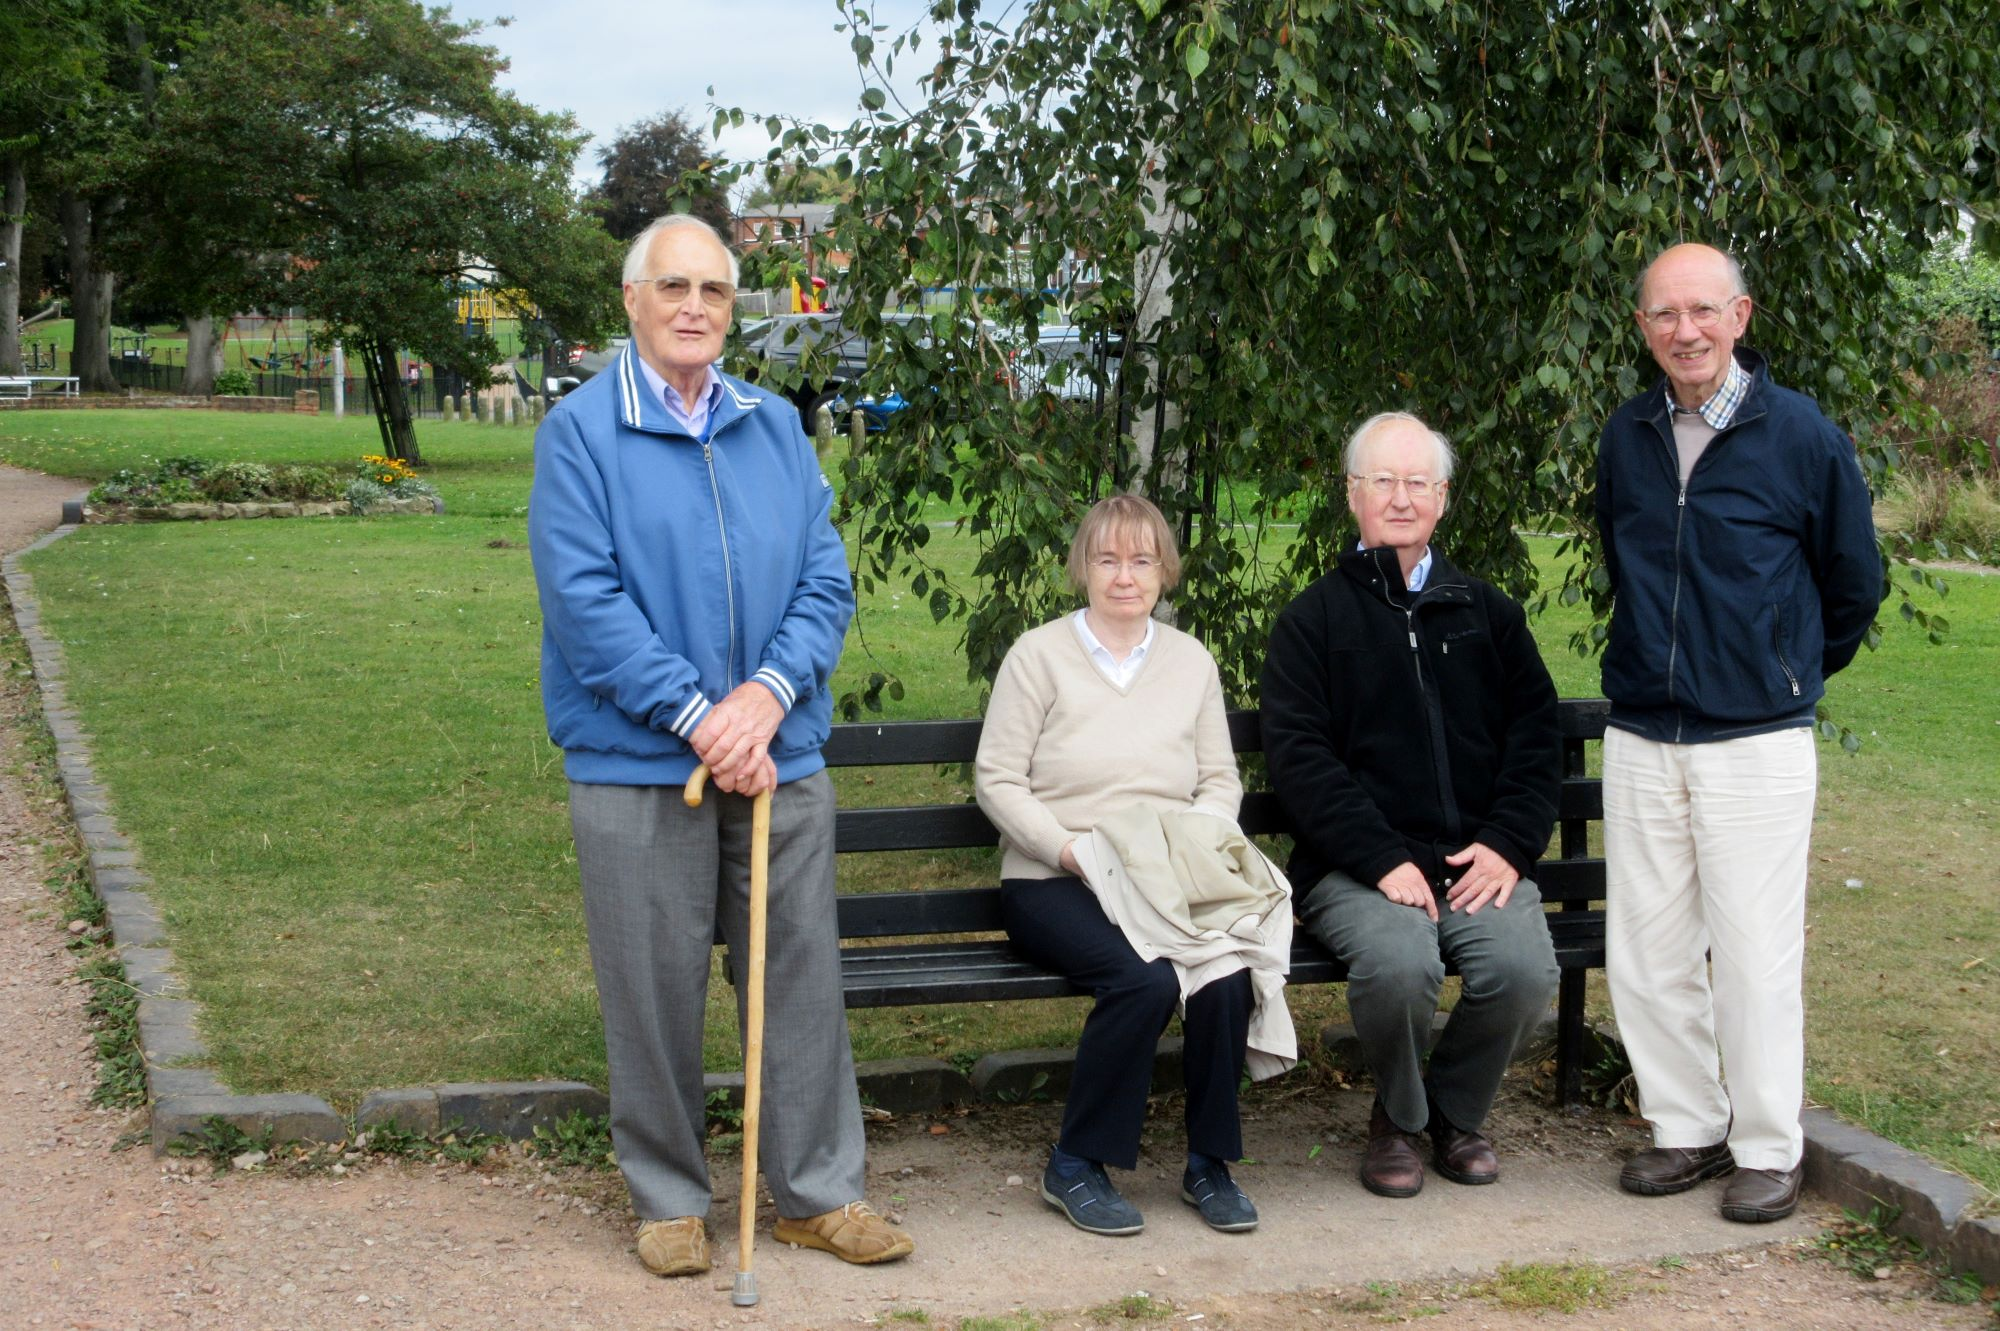 Amblers by the Recreation Ground